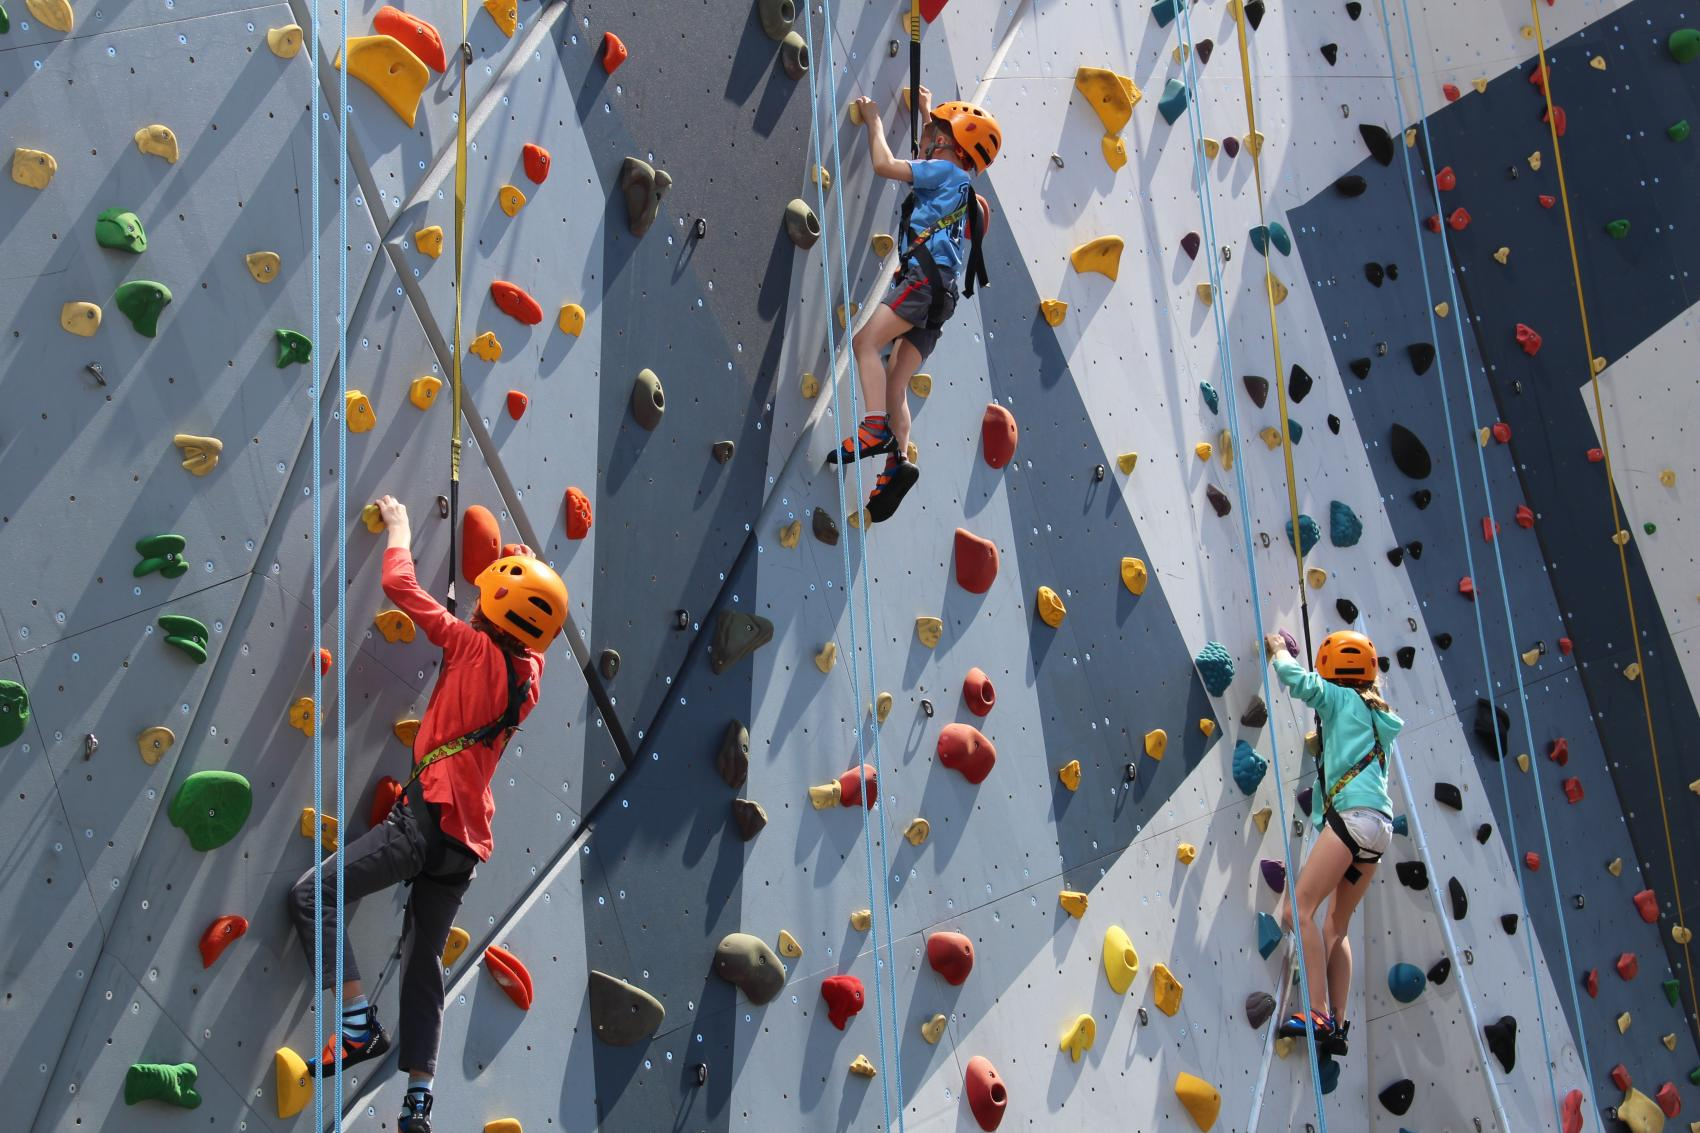 Auto-Belay (June 06, 2018) - Maggie Daley Park - Maggie Daley Park